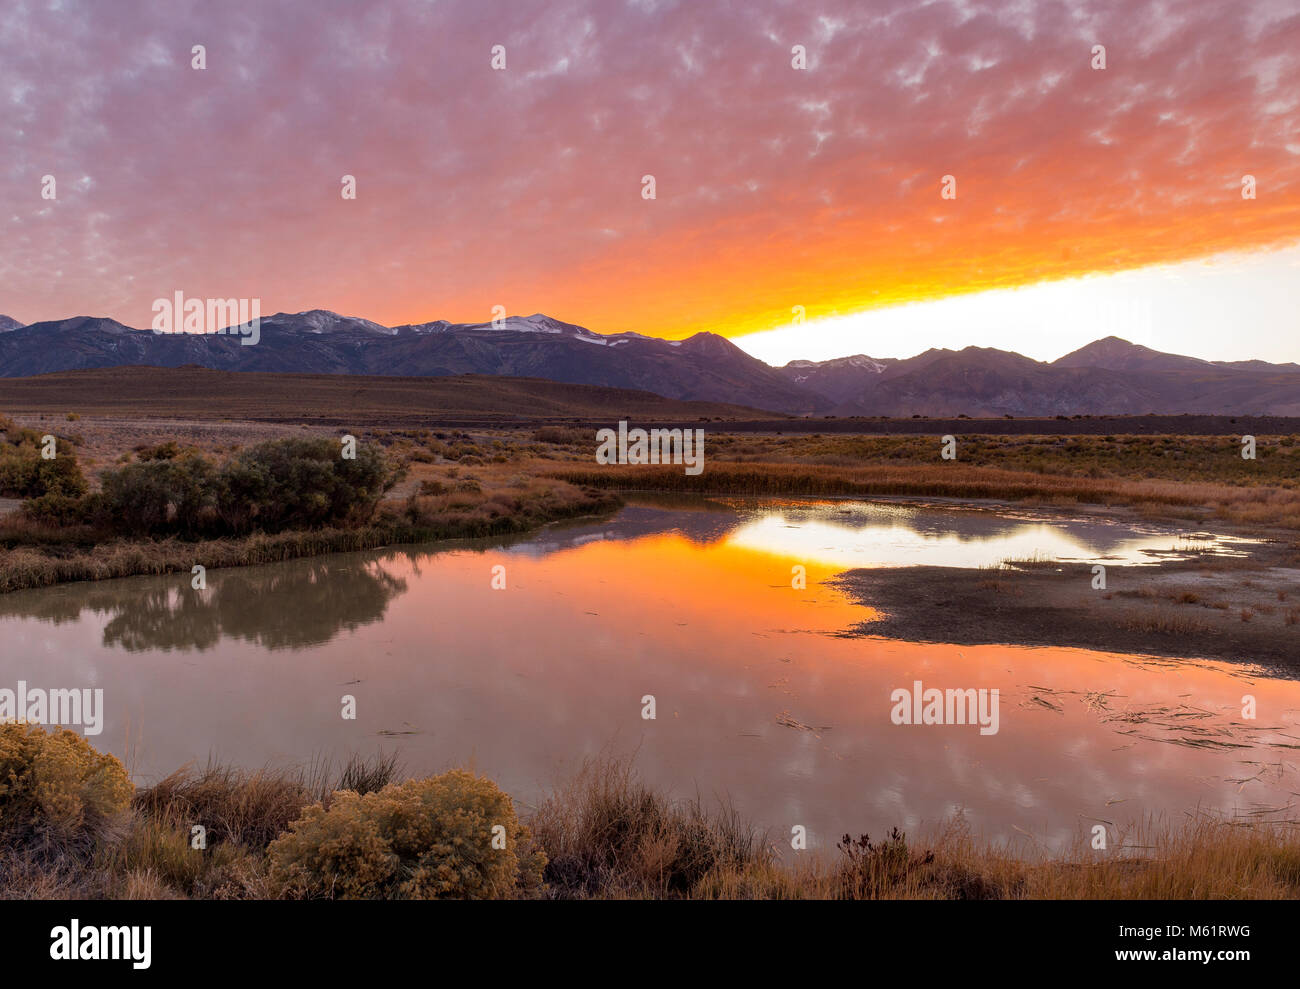 Sunset, Wetlands, Mono Basin National Forest Scenic Area, Eastern Sierra, Inyo National Forest , California - Stock Image